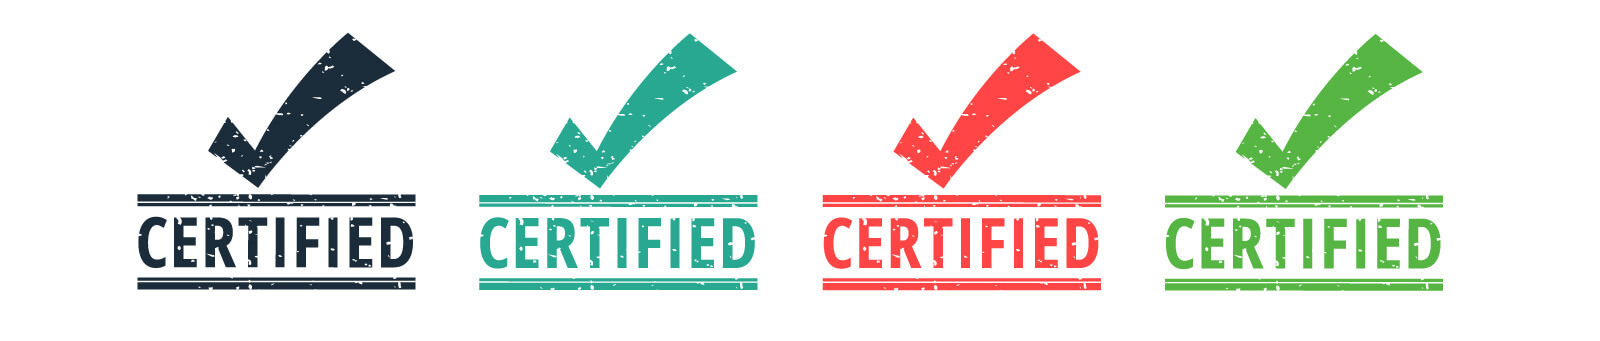 What it takes to keep certifications up to date